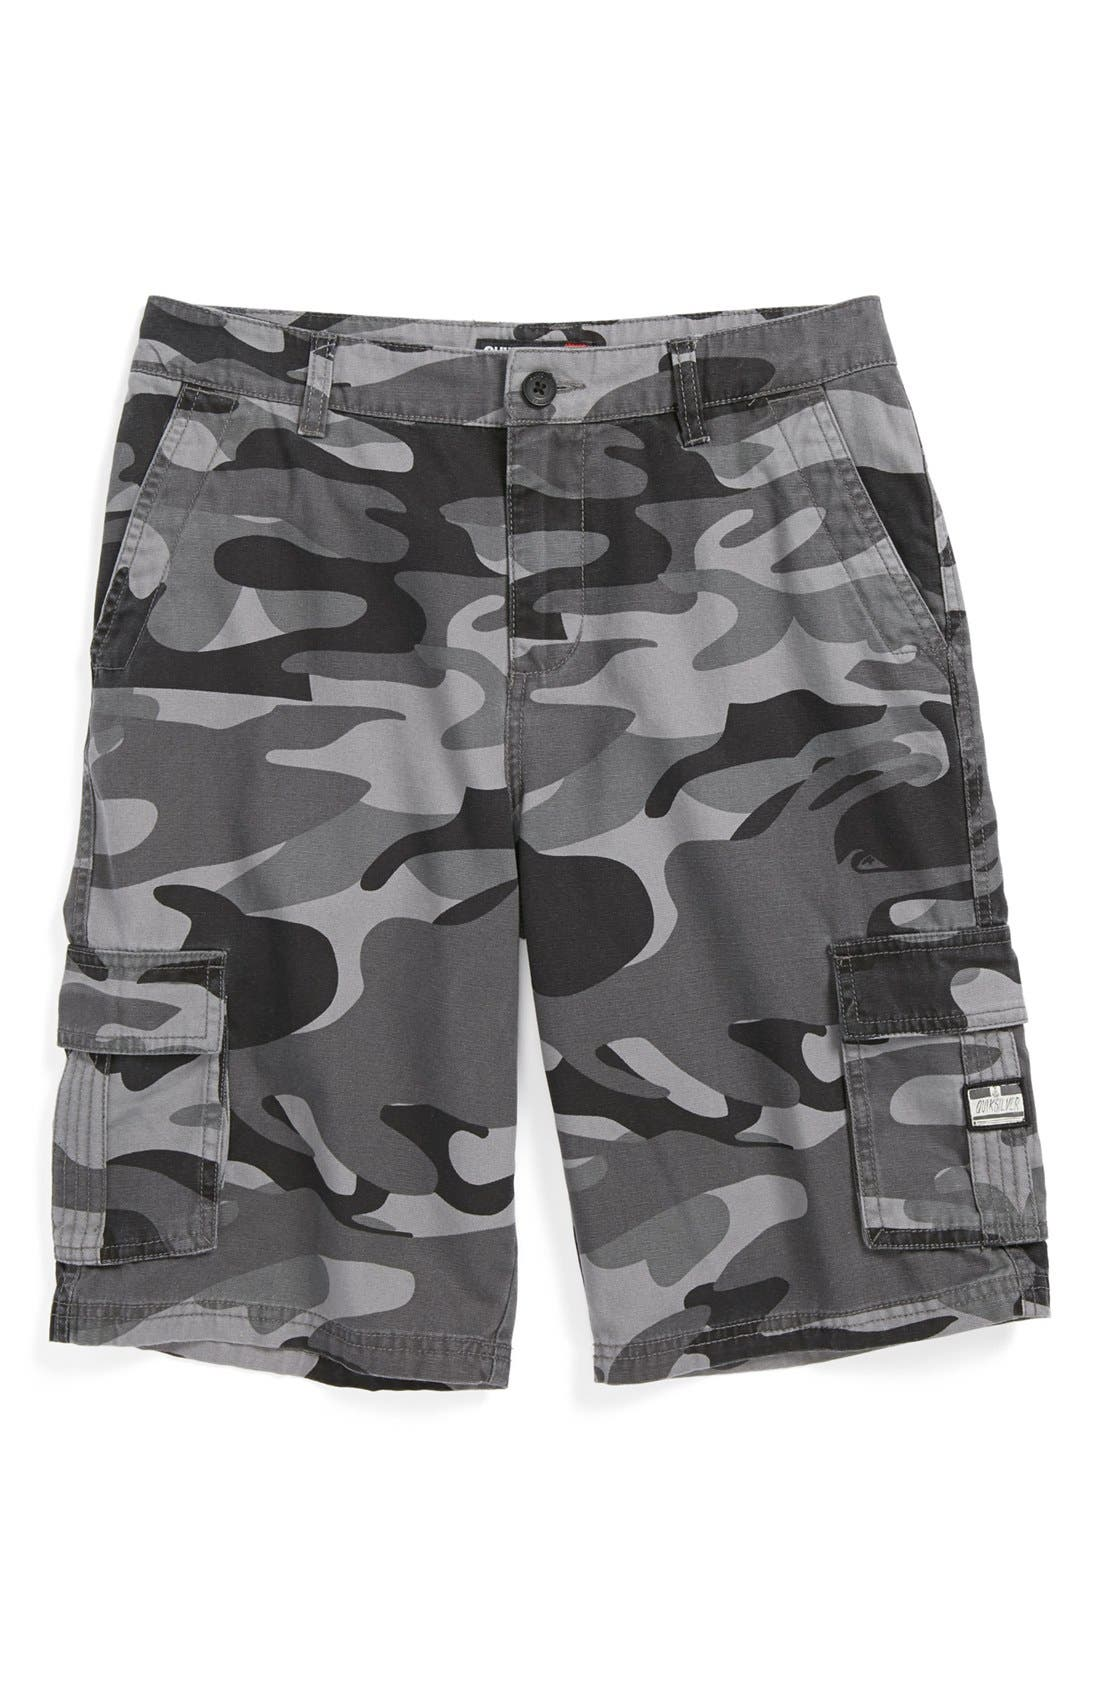 Main Image - Quiksilver 'Sue Fley' Camo Shorts (Big Boys)